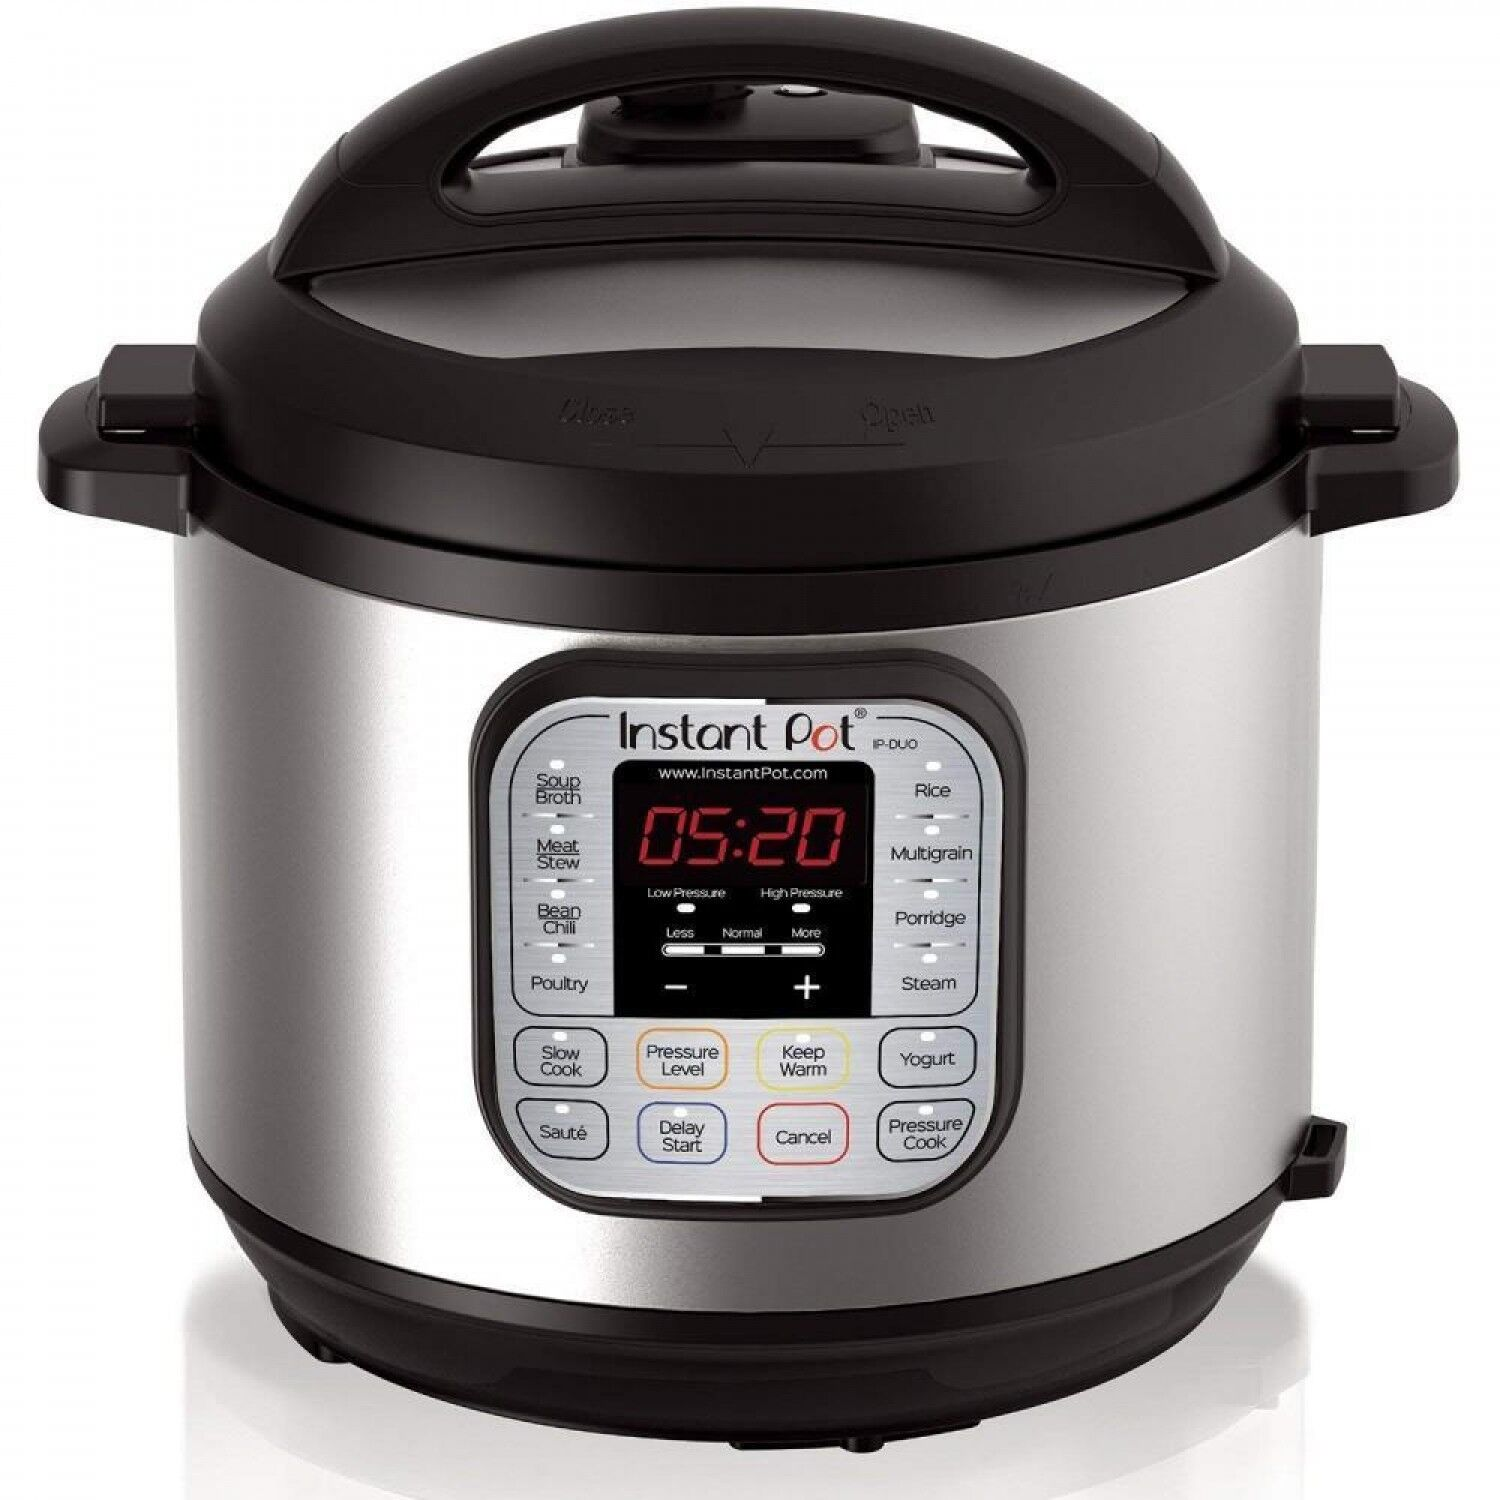 New Pot DUO80 8 Qt 7-in-1 Multi- Use Programmable Pressure Cooker, Slow Instant.